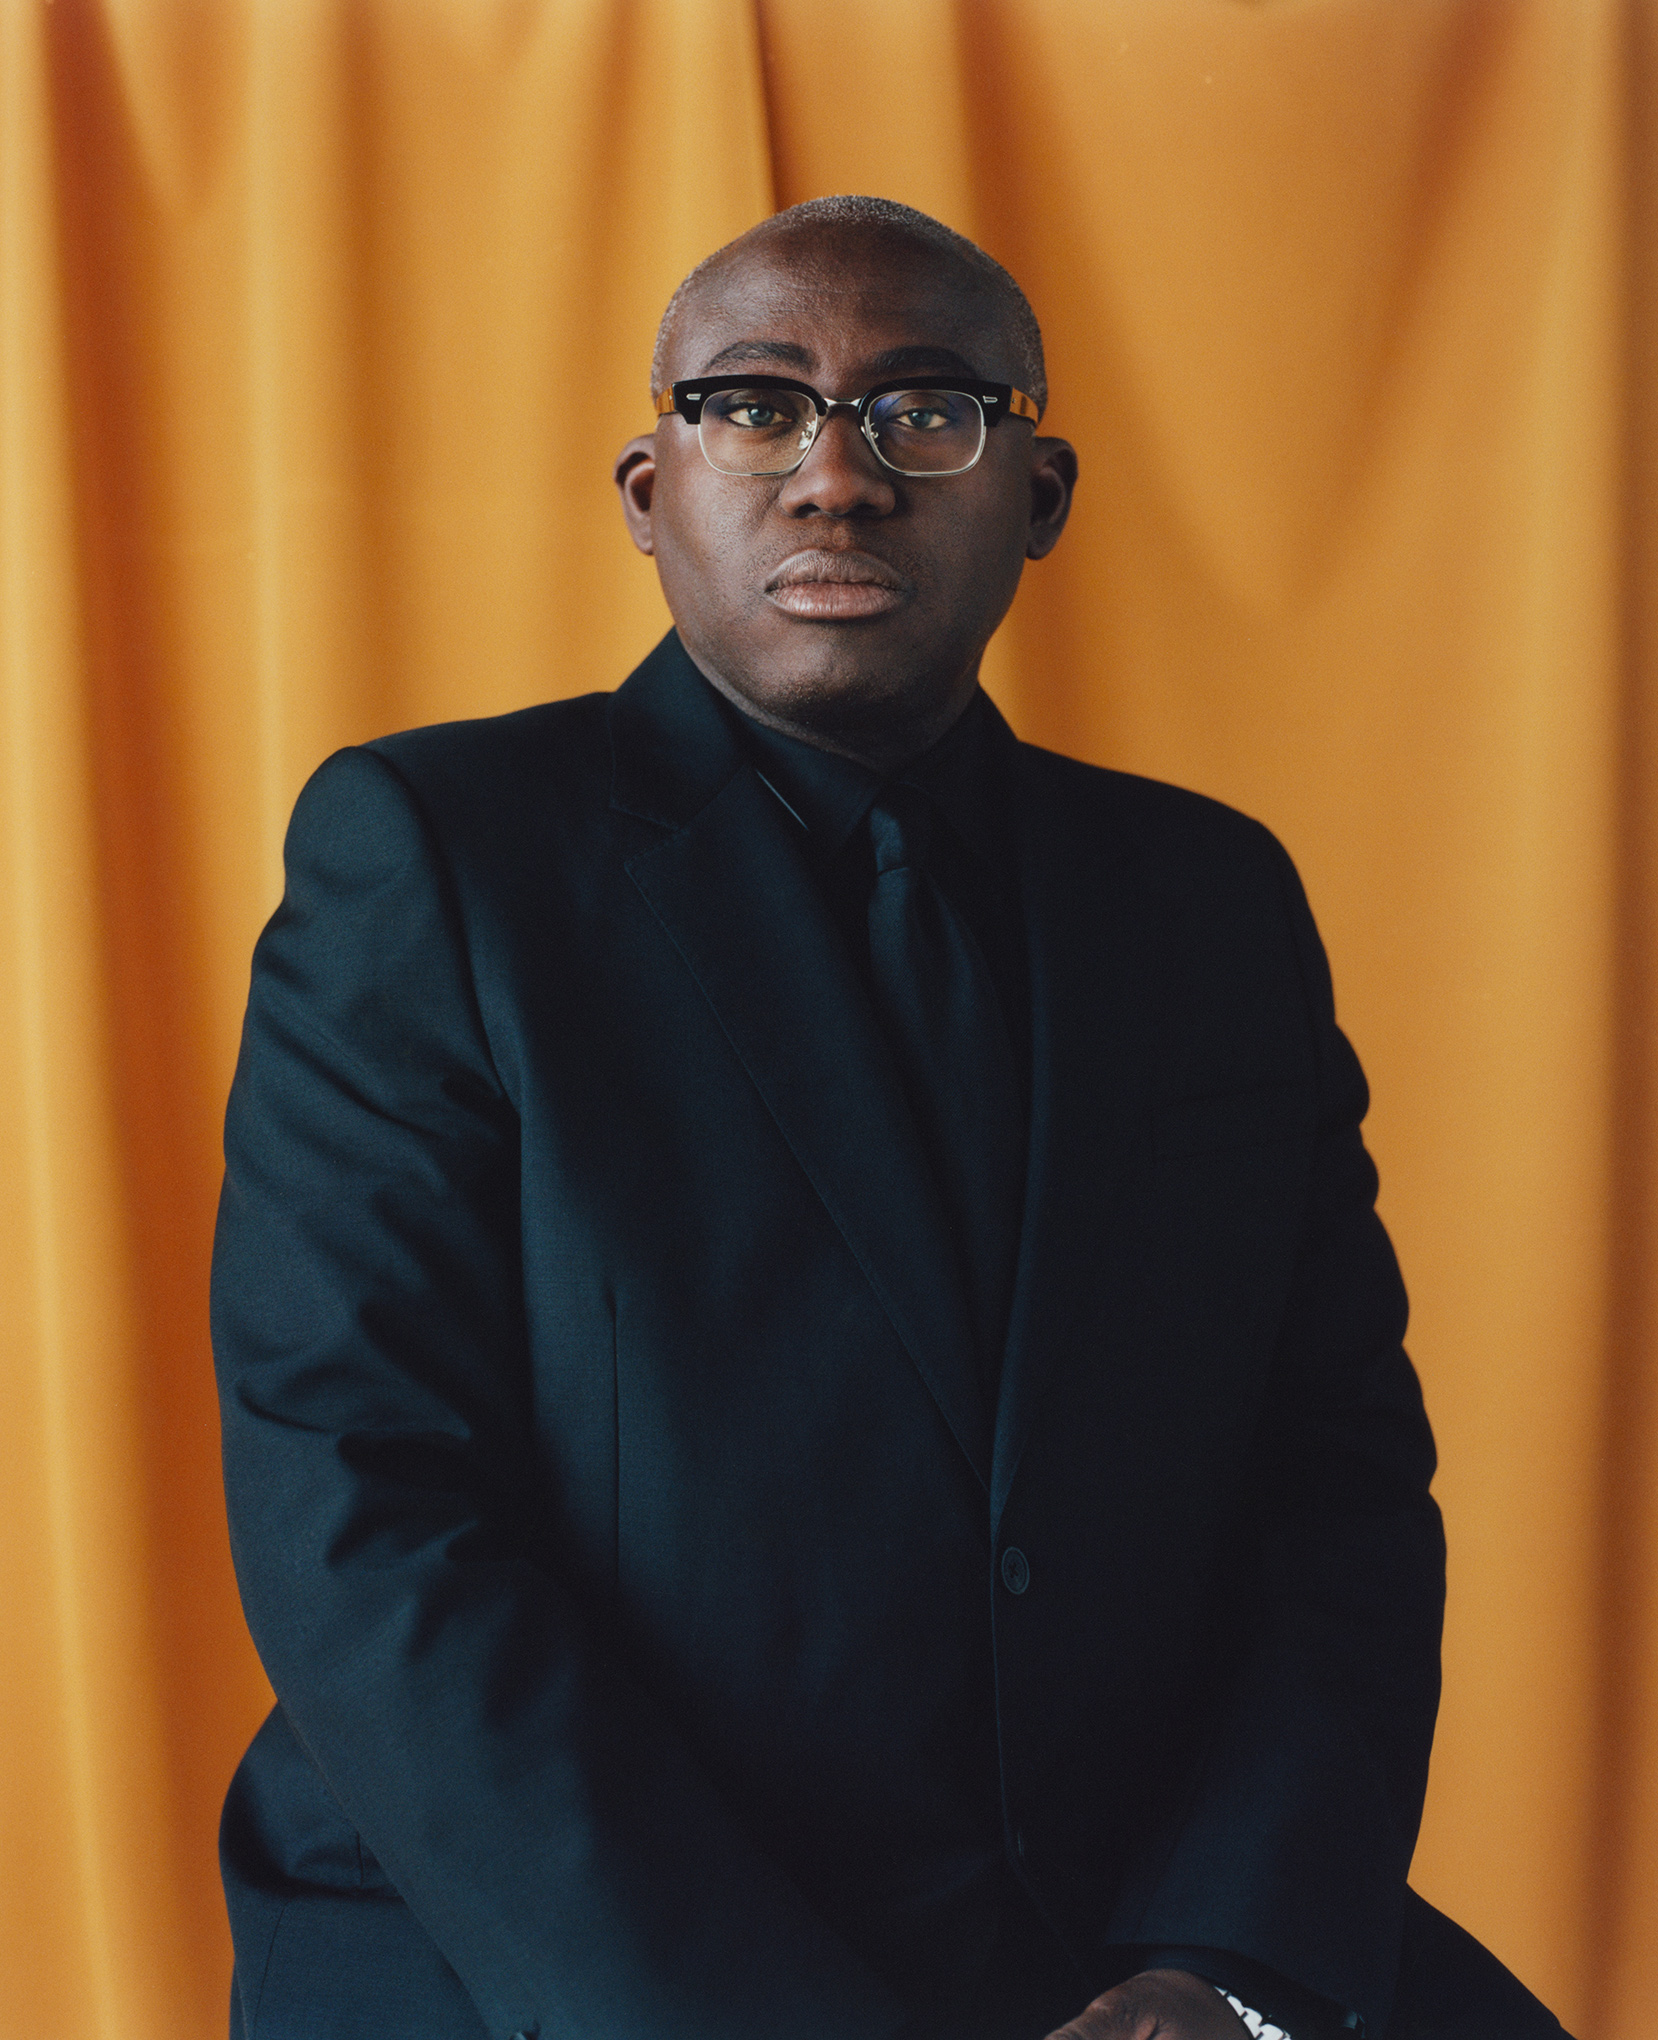 British Vogue editor in chief Enninful in Ladbroke Grove, London, on Aug. 31.